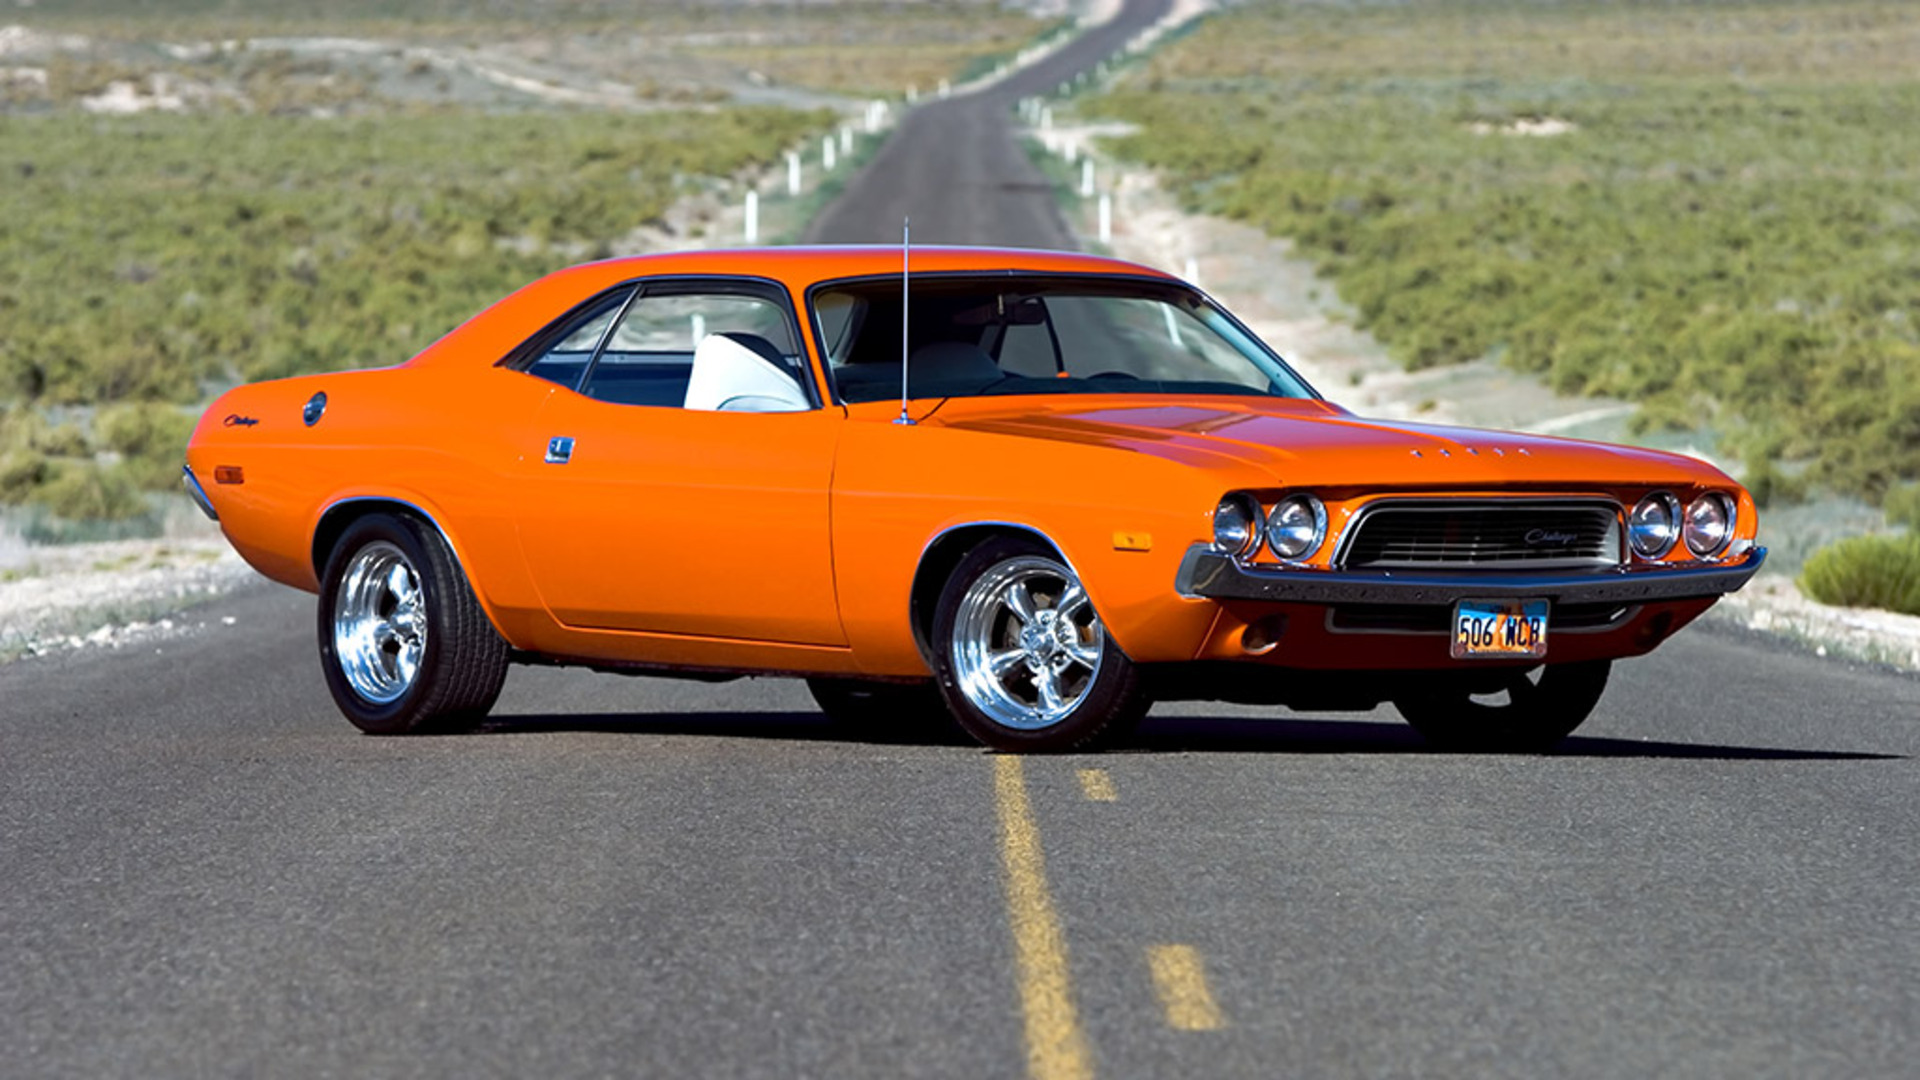 Dodge Challenger roads muscle cars orange hot rod wallpaper background 1920x1080